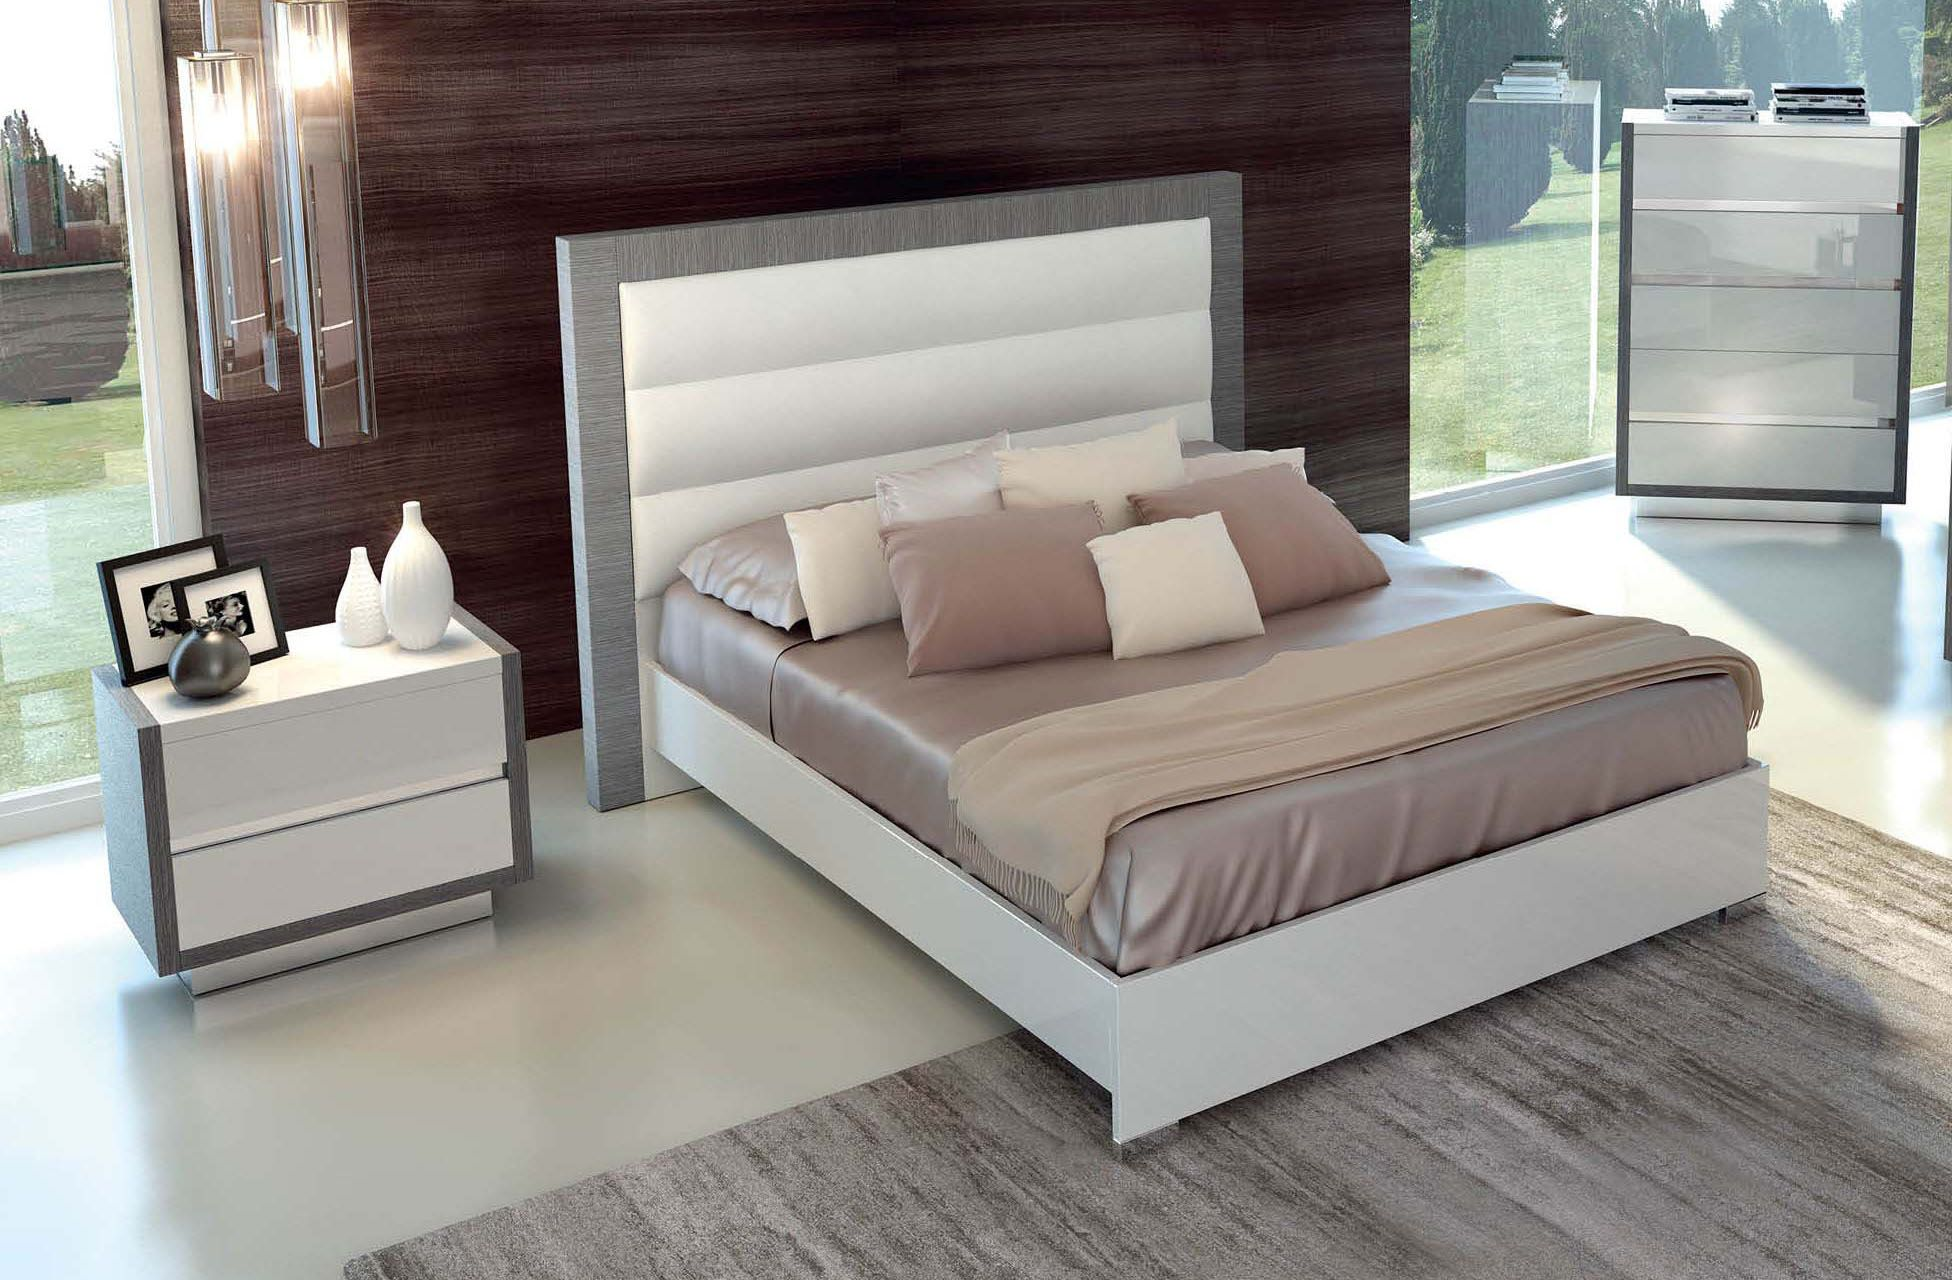 Lacquered Made in Italy Wood Luxury Platform Bed in 2019